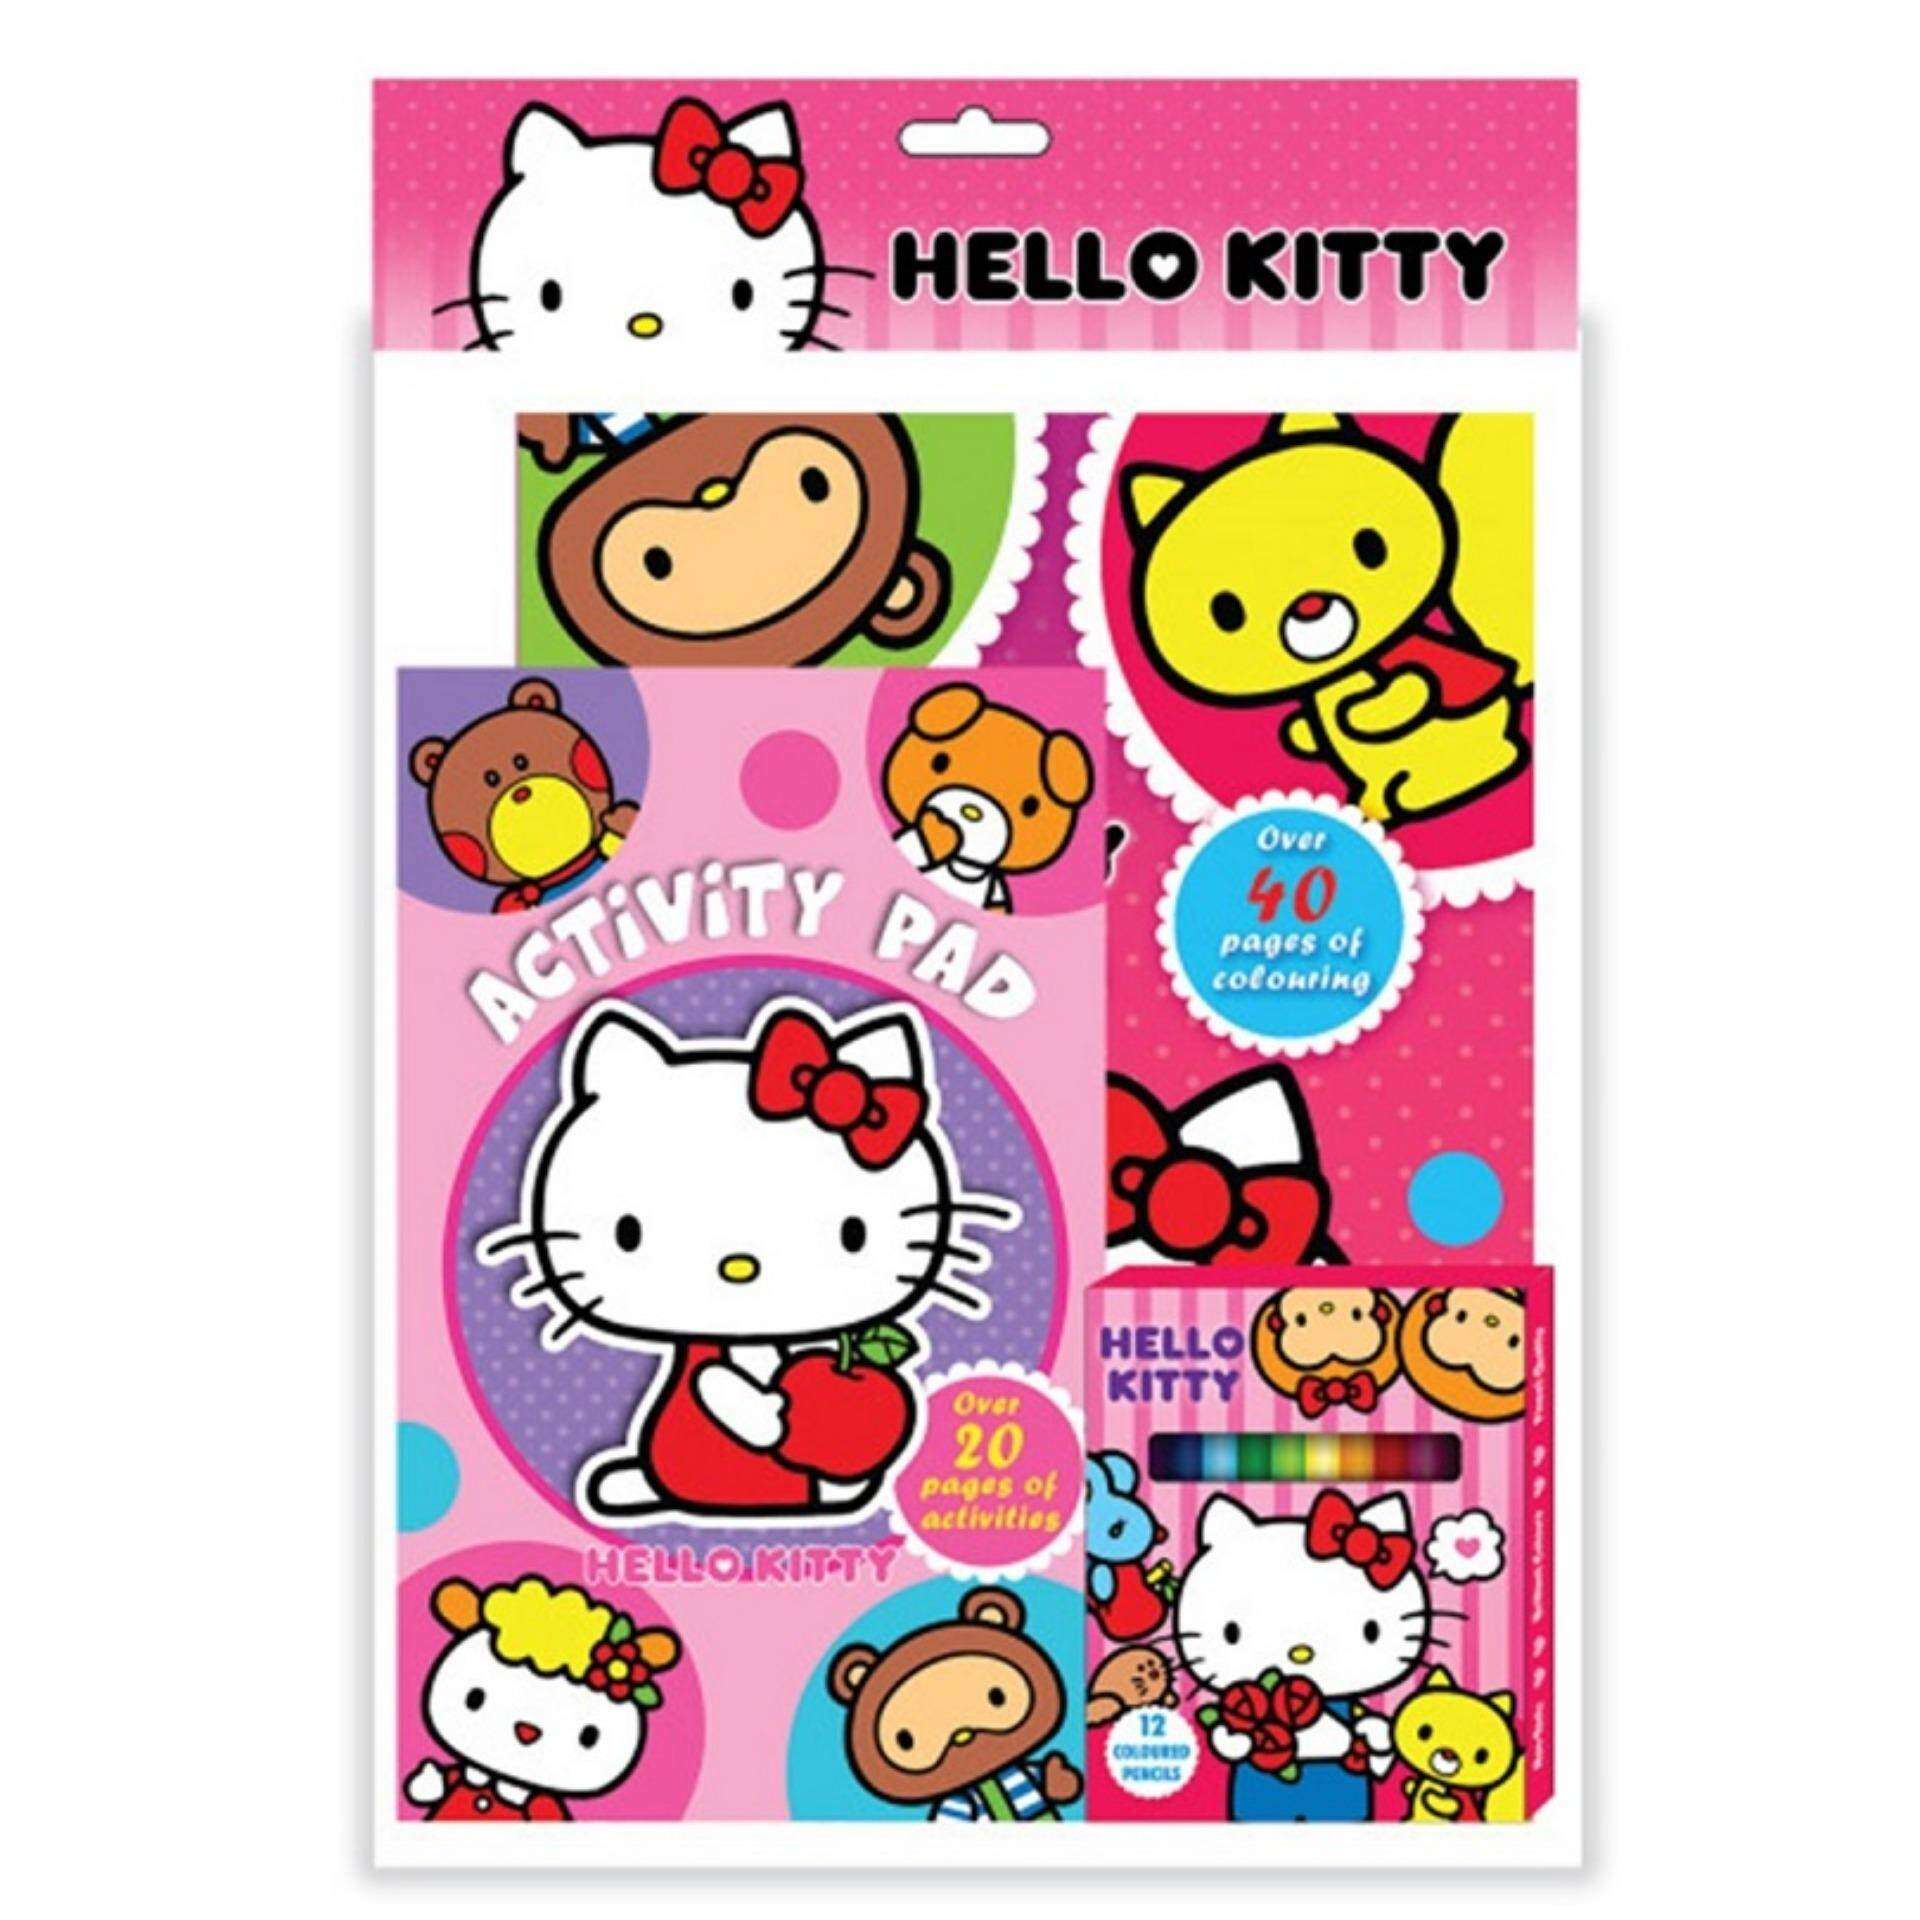 Sanrio Hello Kitty Activity & Colouring Book With Activity Pad, 12pcs Colour Pencil Set - Pink Colour